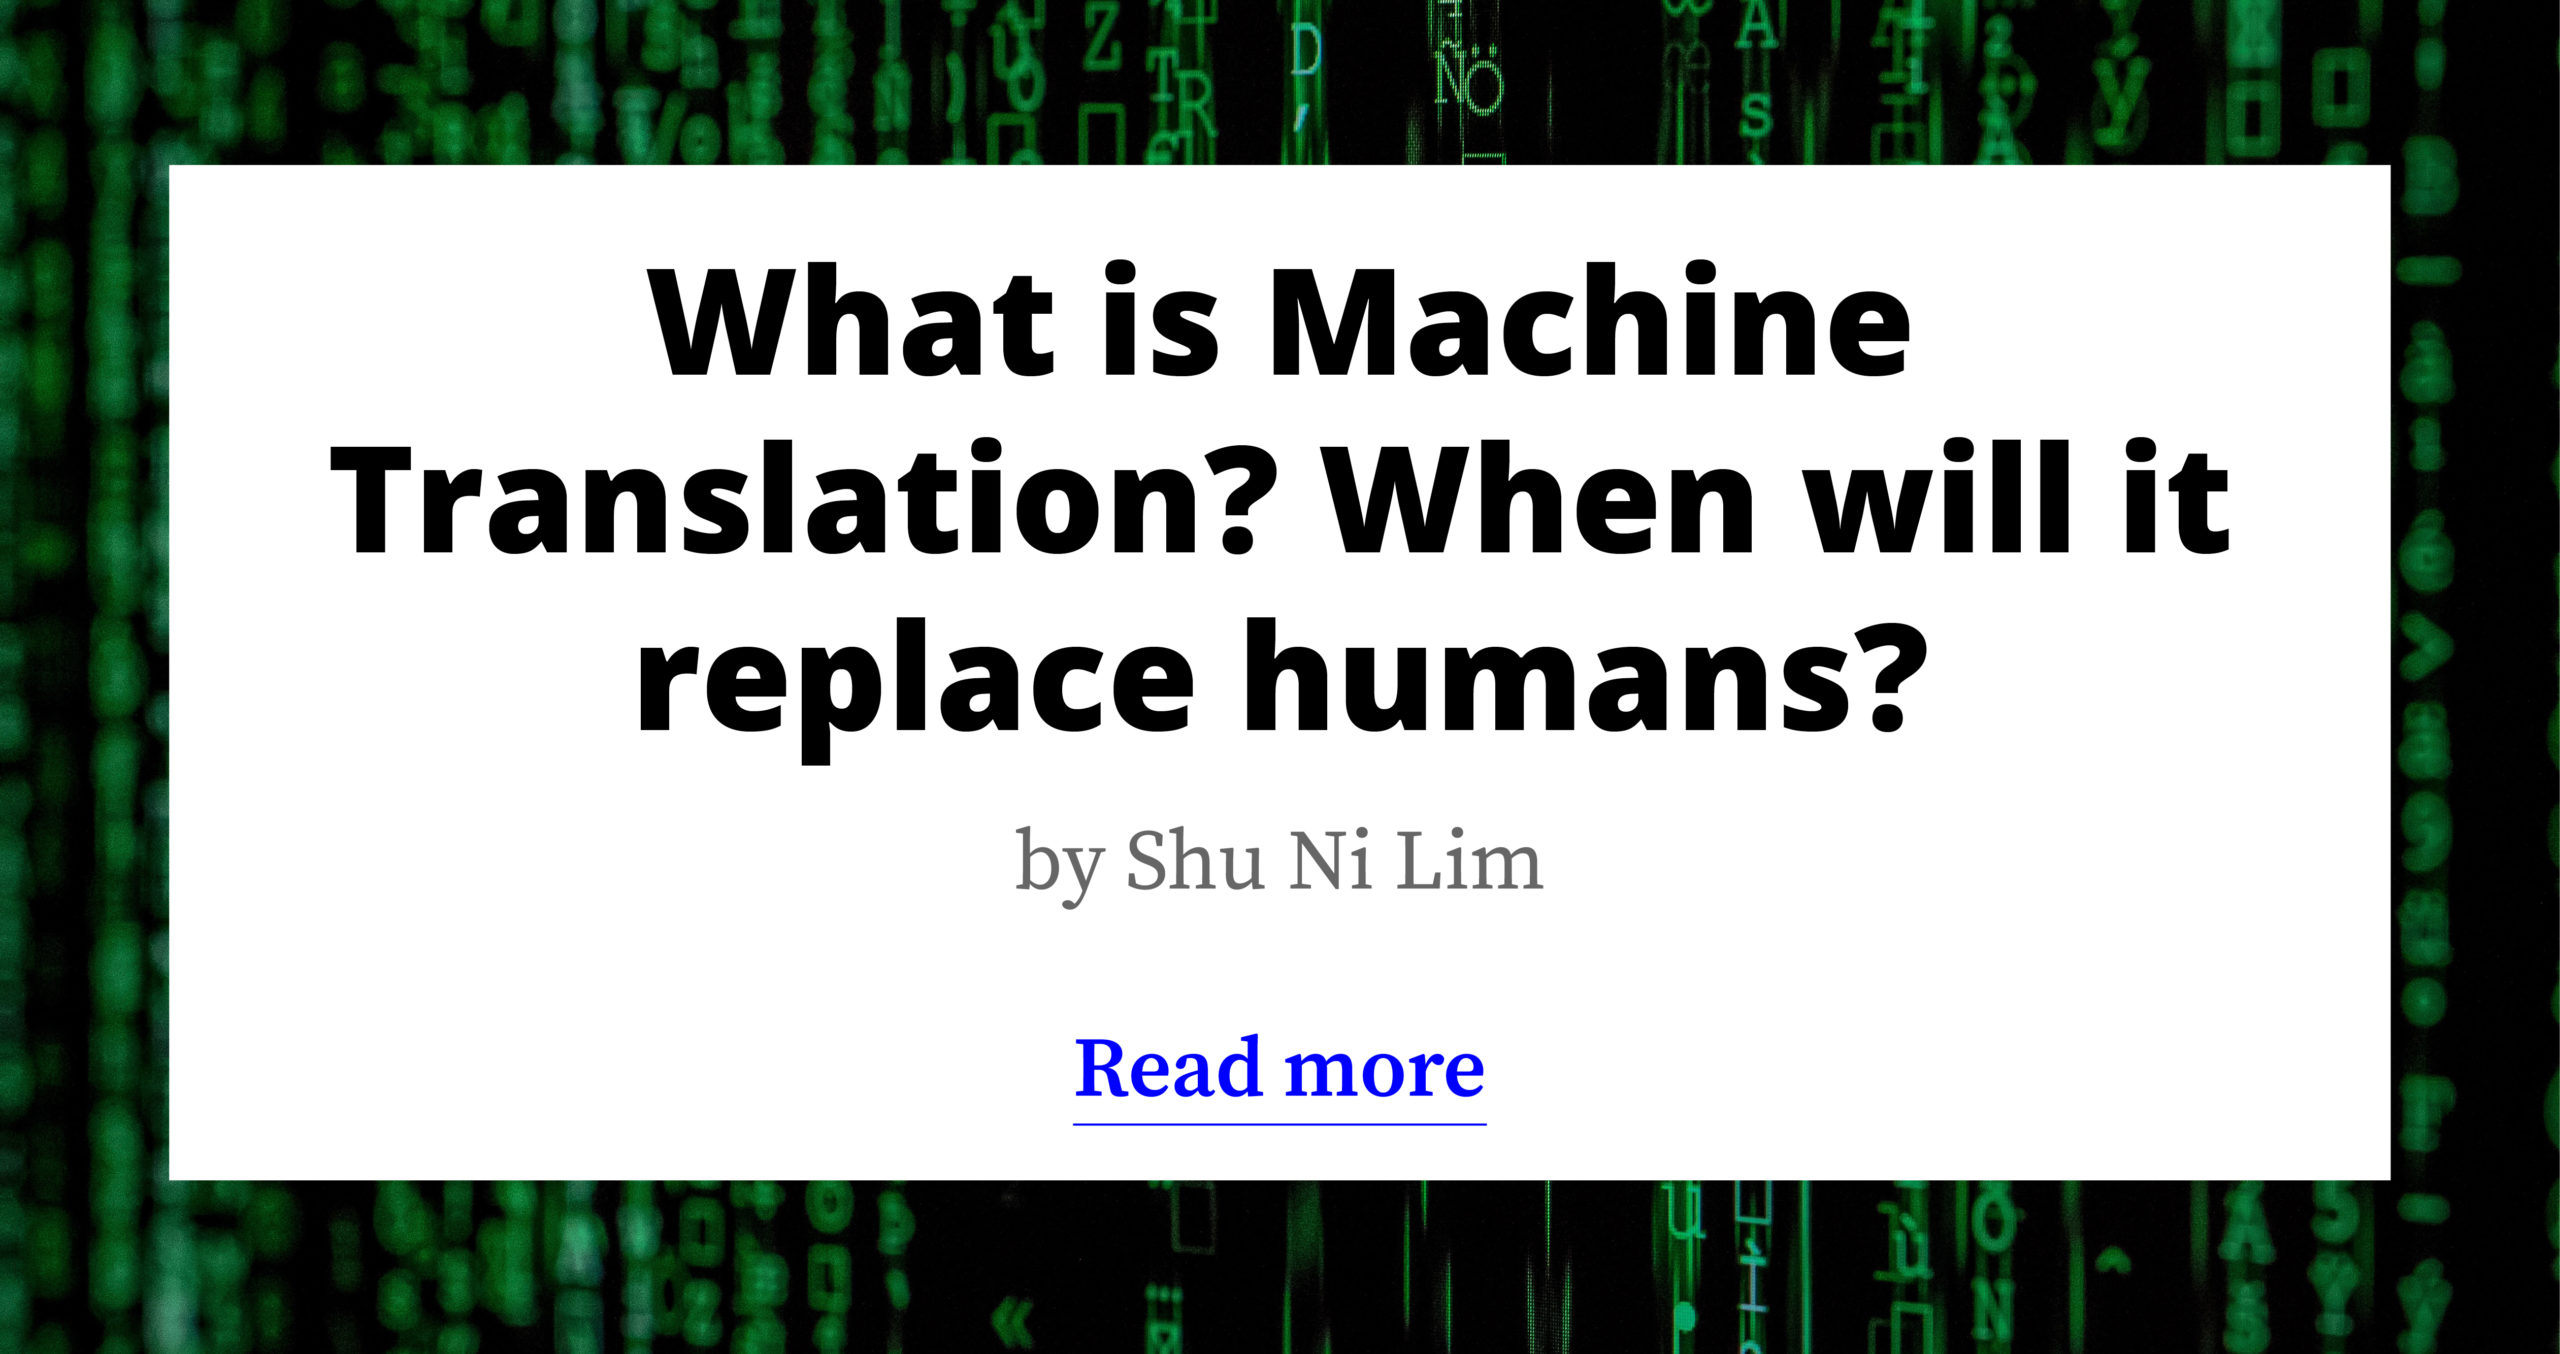 What is Machine Translation? When will it replace humans?